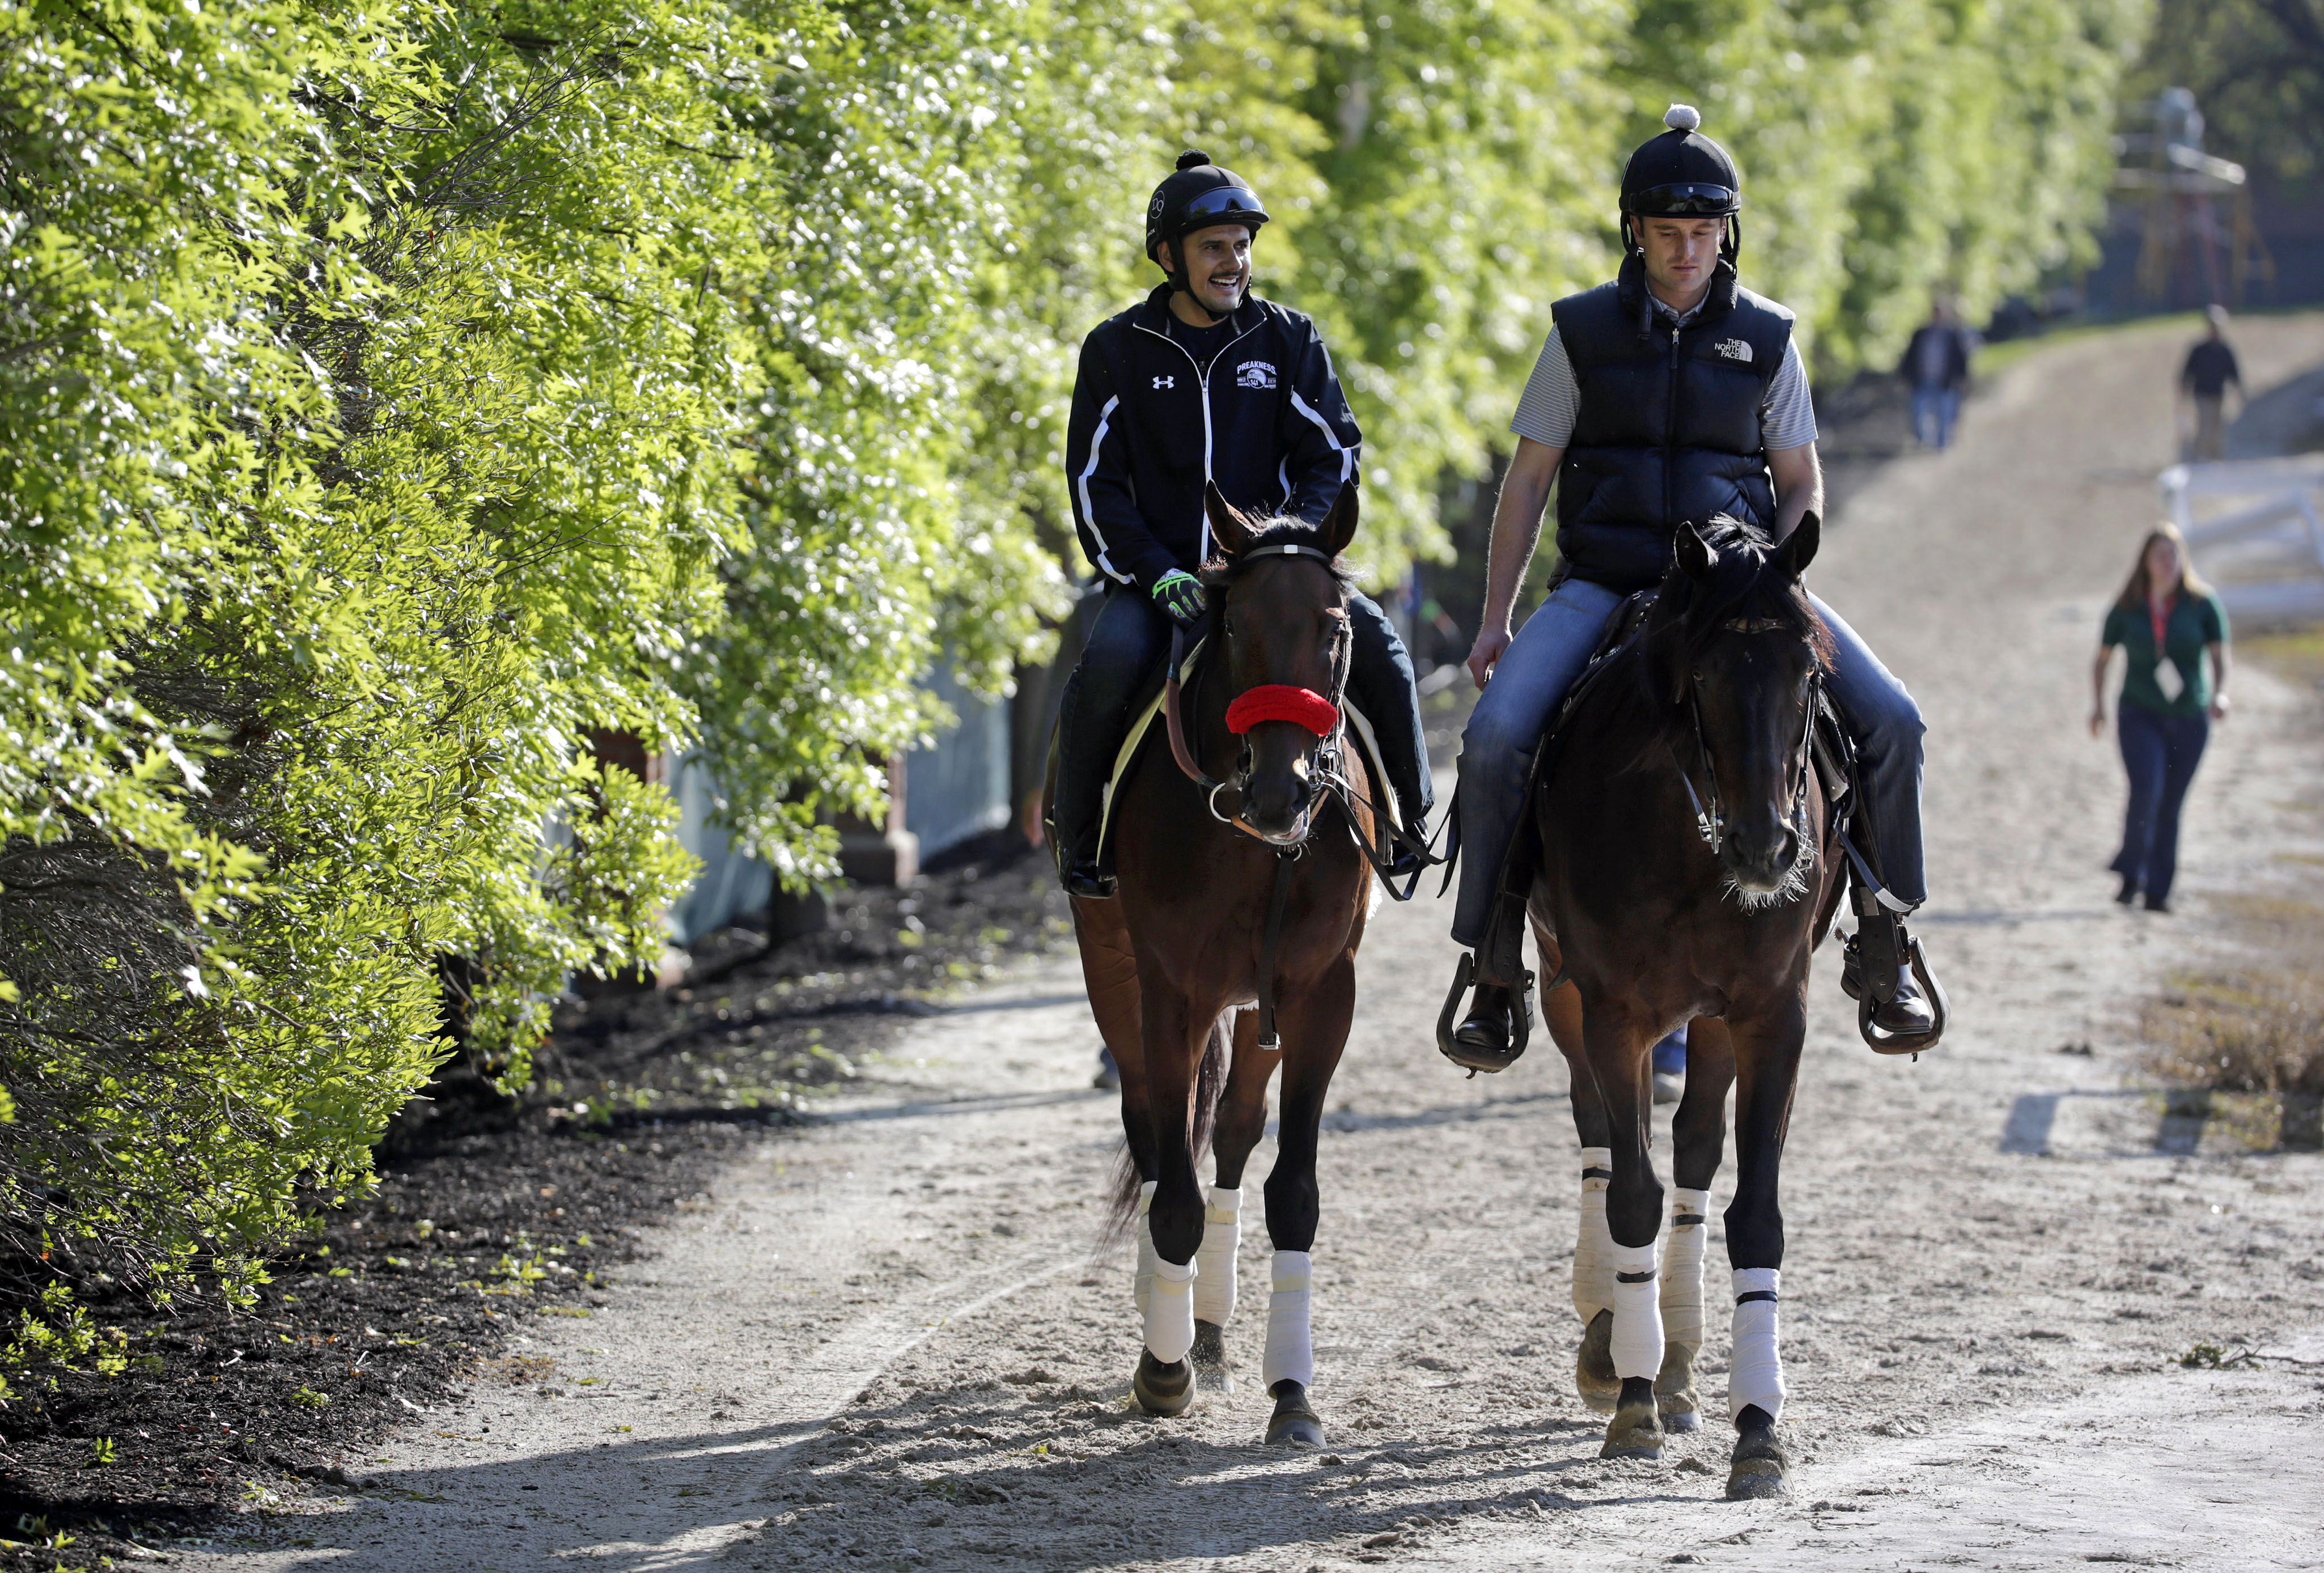 Kentucky Derby winner Nyquist, left, ridden by exercise rider Jonny Garcia, walks to the barns alongside an outrider at Pimlico Race Course in Baltimore, Friday, May 20, 2016. The Preakness Stakes horse race is scheduled to take place May 21. (AP Photo/Pa